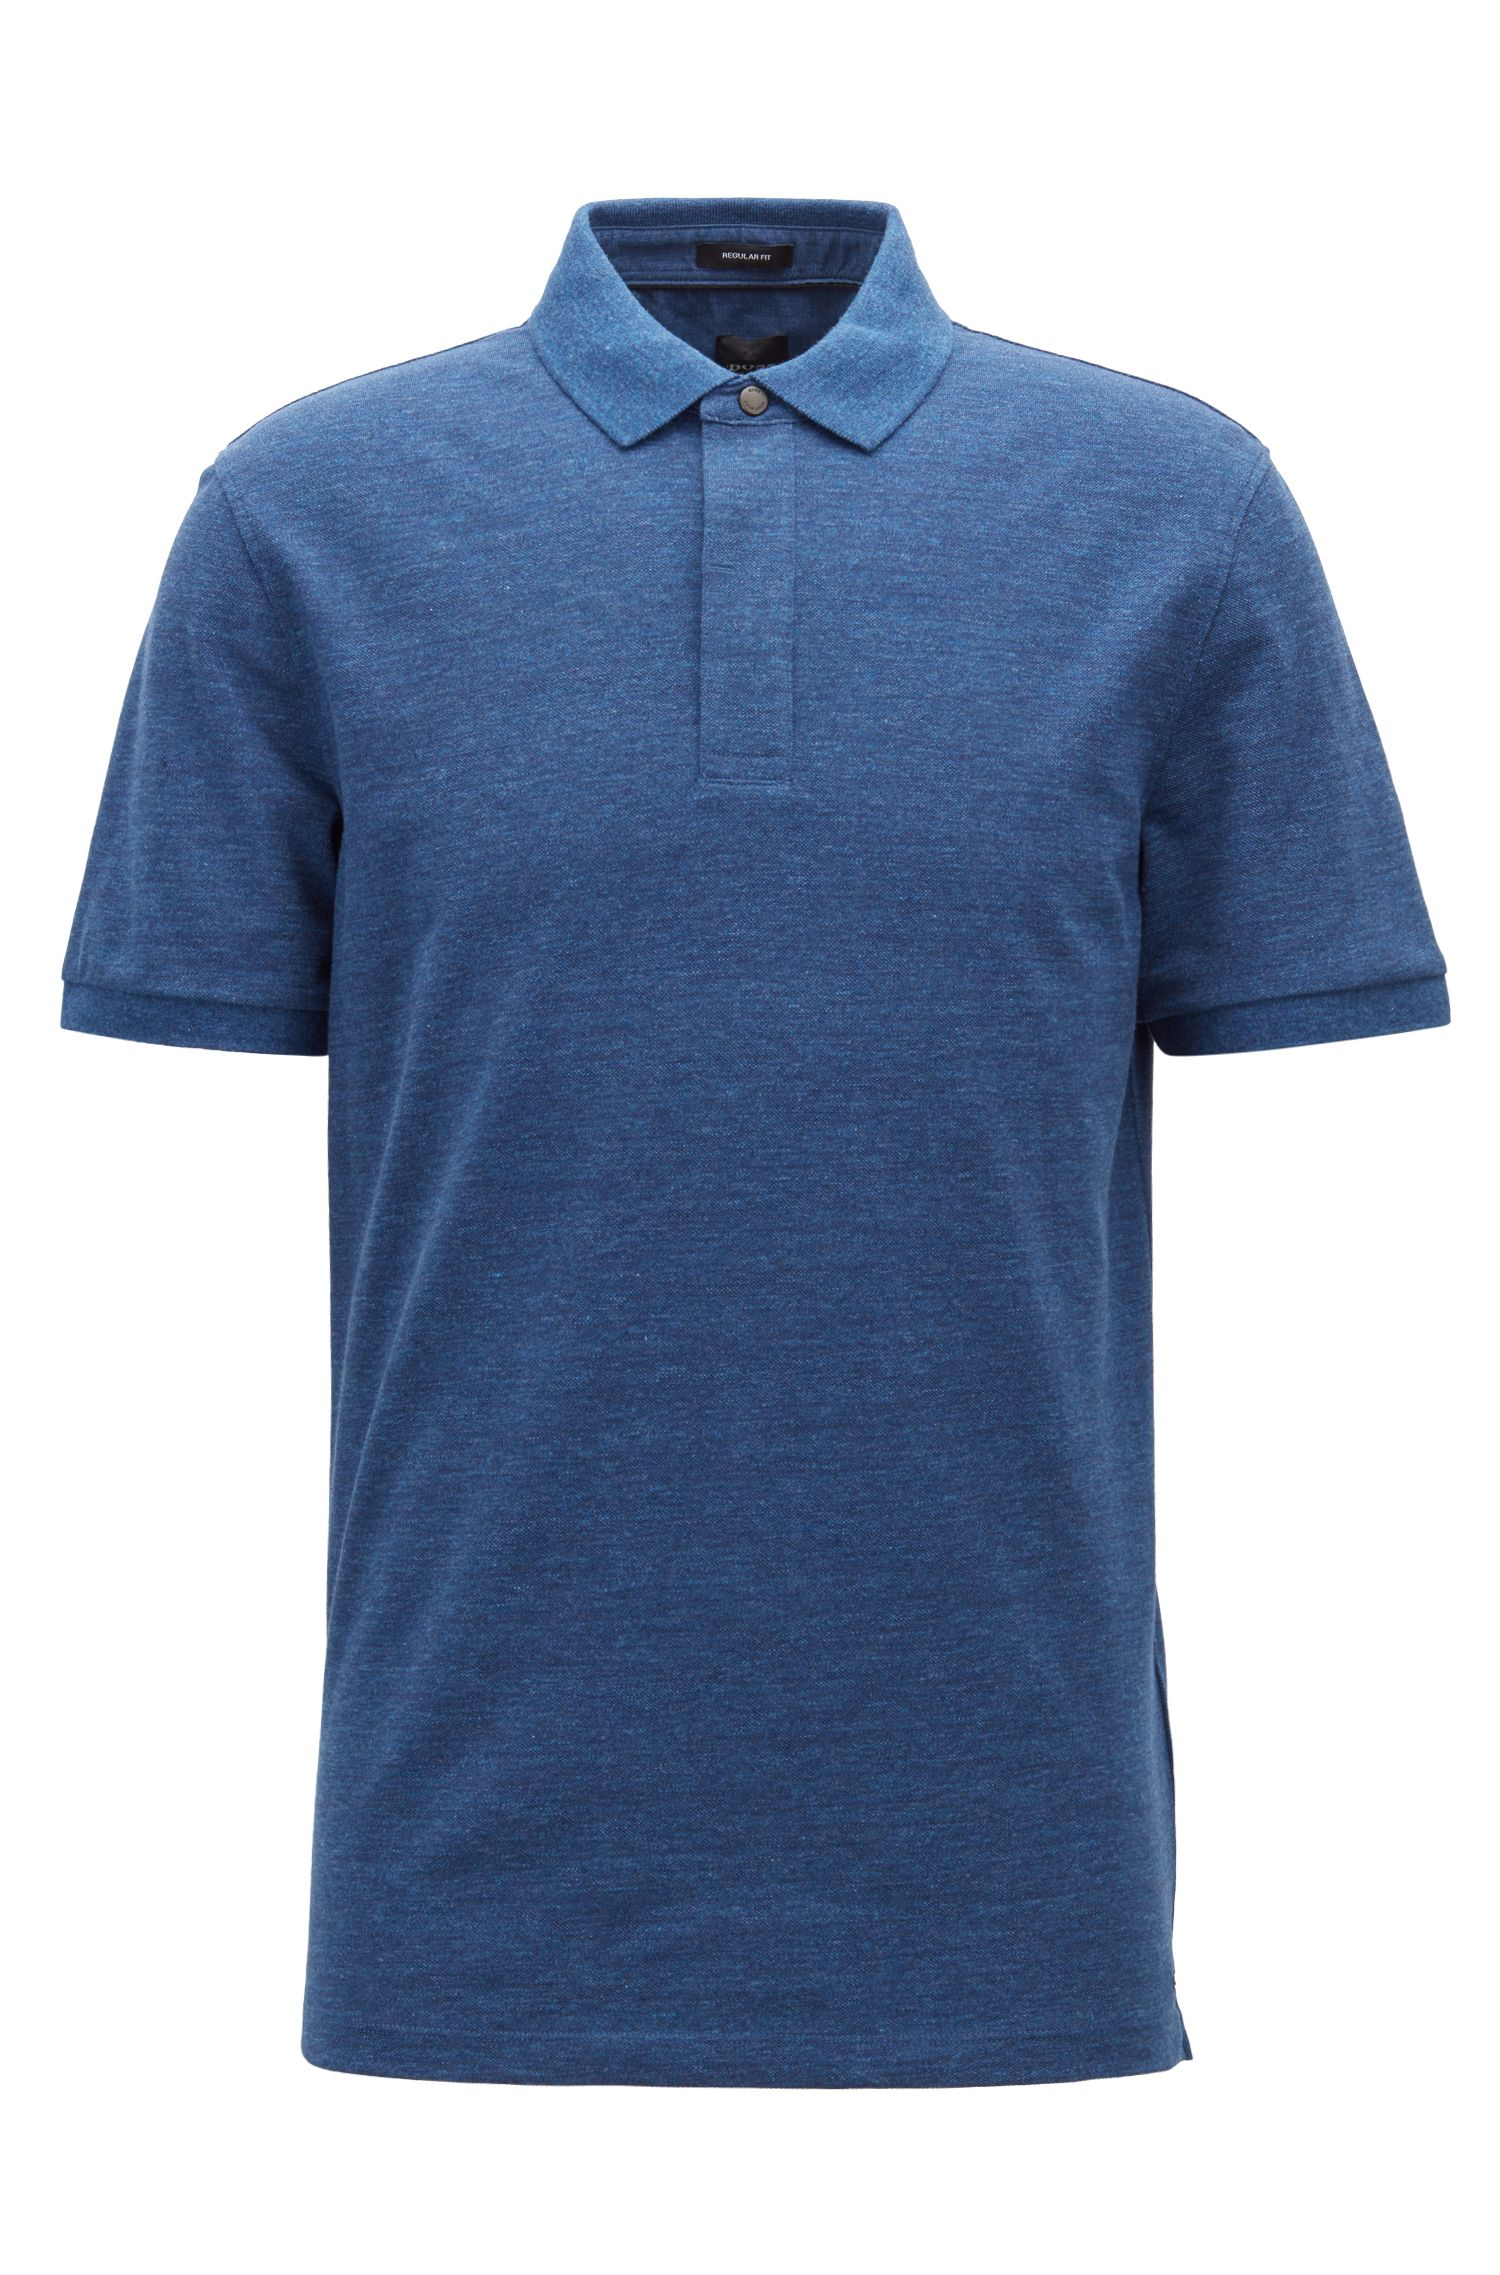 Denim-effect polo shirt with press-stud closure, Open Blue